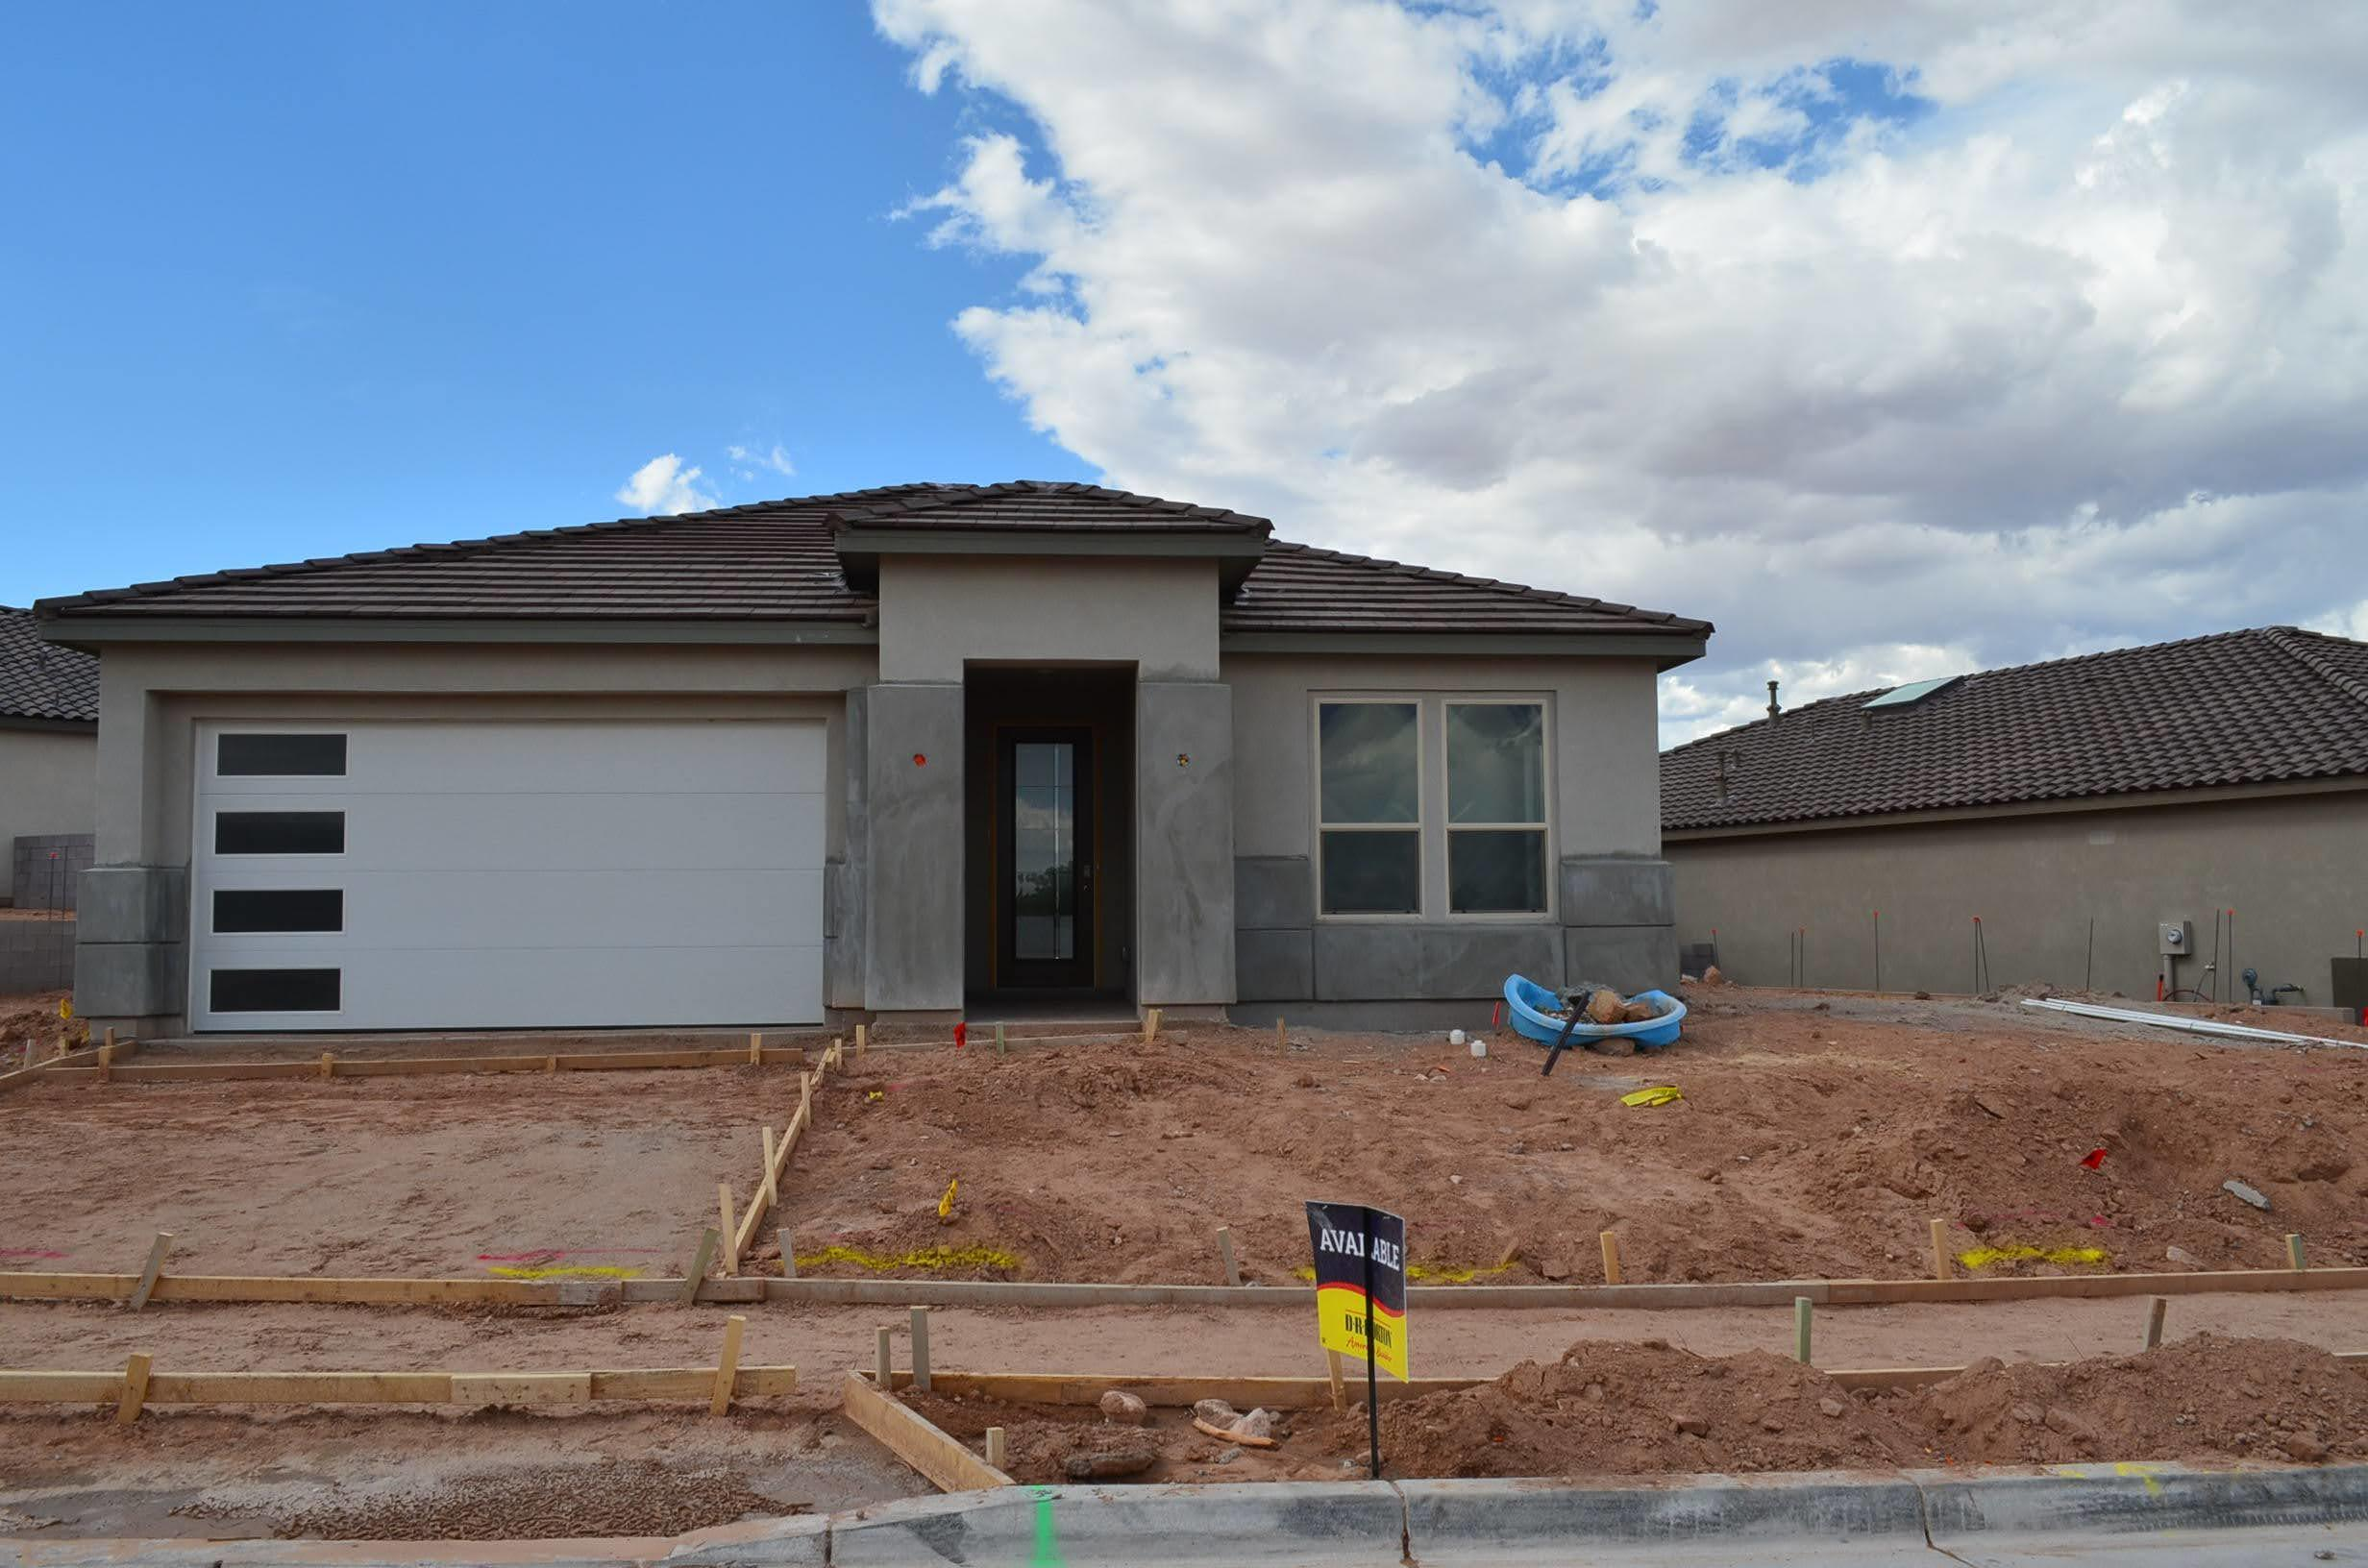 UNDER CONSTRUCTION.  Enjoy the Luxury Lifestyle in this brand new community of Jemez Vista in beautiful Mariposa.  The open floorplan features a Gourmet Kitchen that includes Whirlpool Stainless Appliances, Granite Counters, and Island, Satin Nickel Pendent lights, and built in oven and microwave.  Cozy up to the Fireplace and enjoy gazing out the glass door that leads to your covered patio to enjoy the beautiful New Mexico sunsets.  Your private Community Center with many amenities that include indoor/outdoor pools, fitness center and much more.  Nestled next to a 2200 acre nature preserve, there are miles of paved and dirt trails for your hiking and biking pleasure.  35 minutes to Santa Fe, 40 minutes to Sunport .